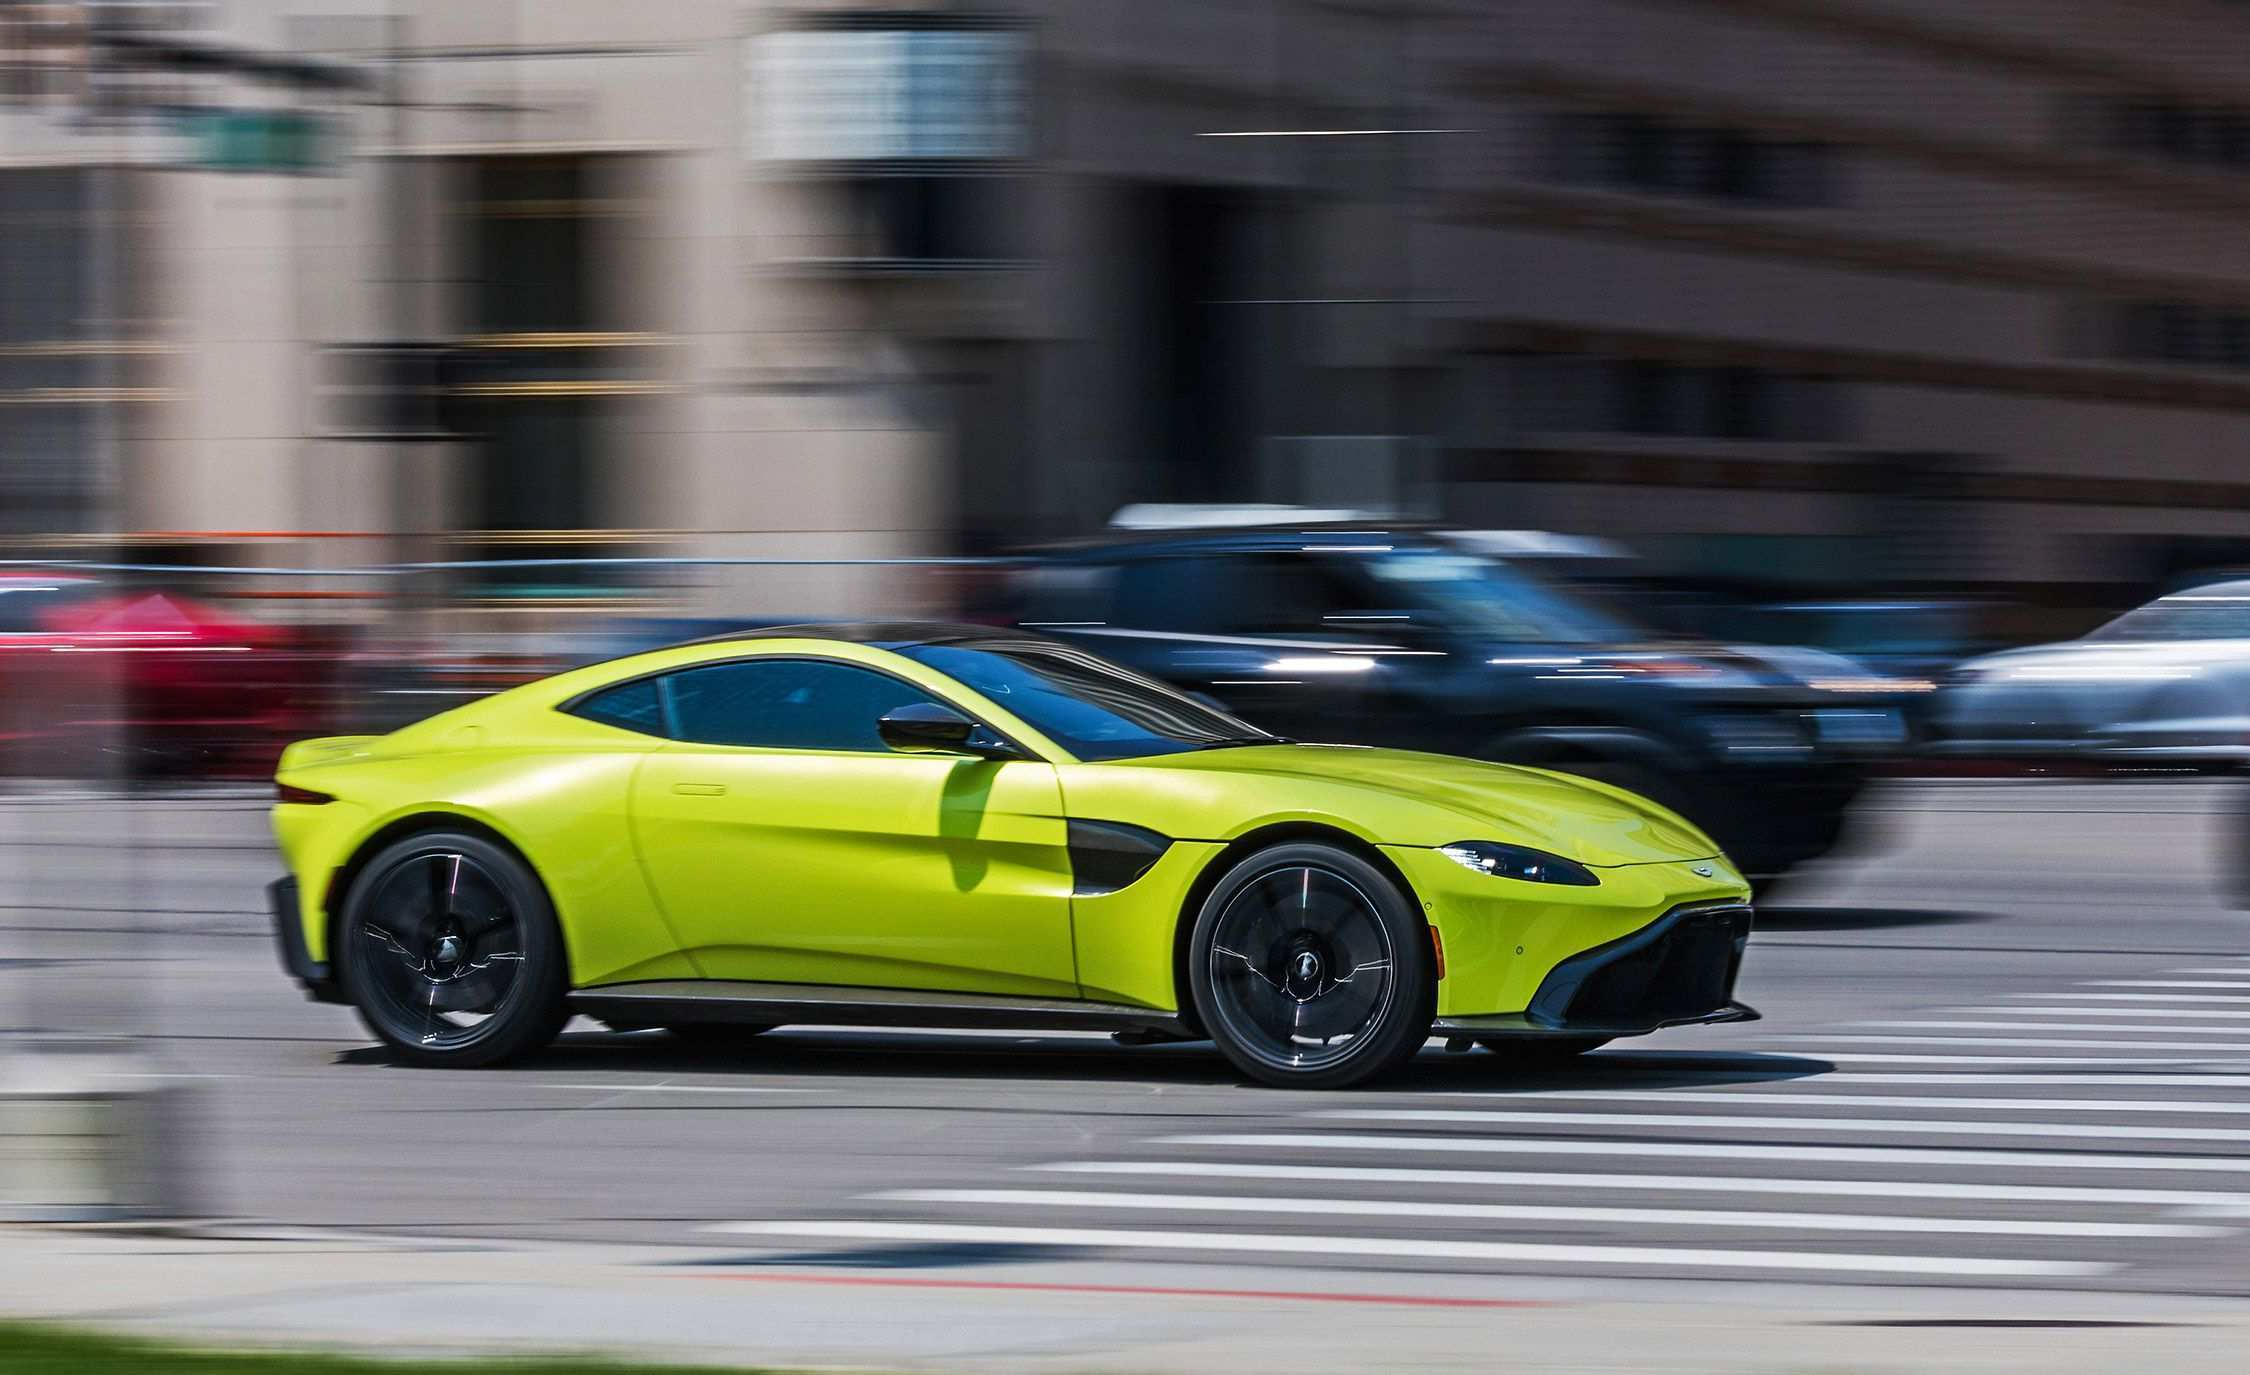 33 All New 2019 Aston Martin Vantage Msrp Configurations with 2019 Aston Martin Vantage Msrp